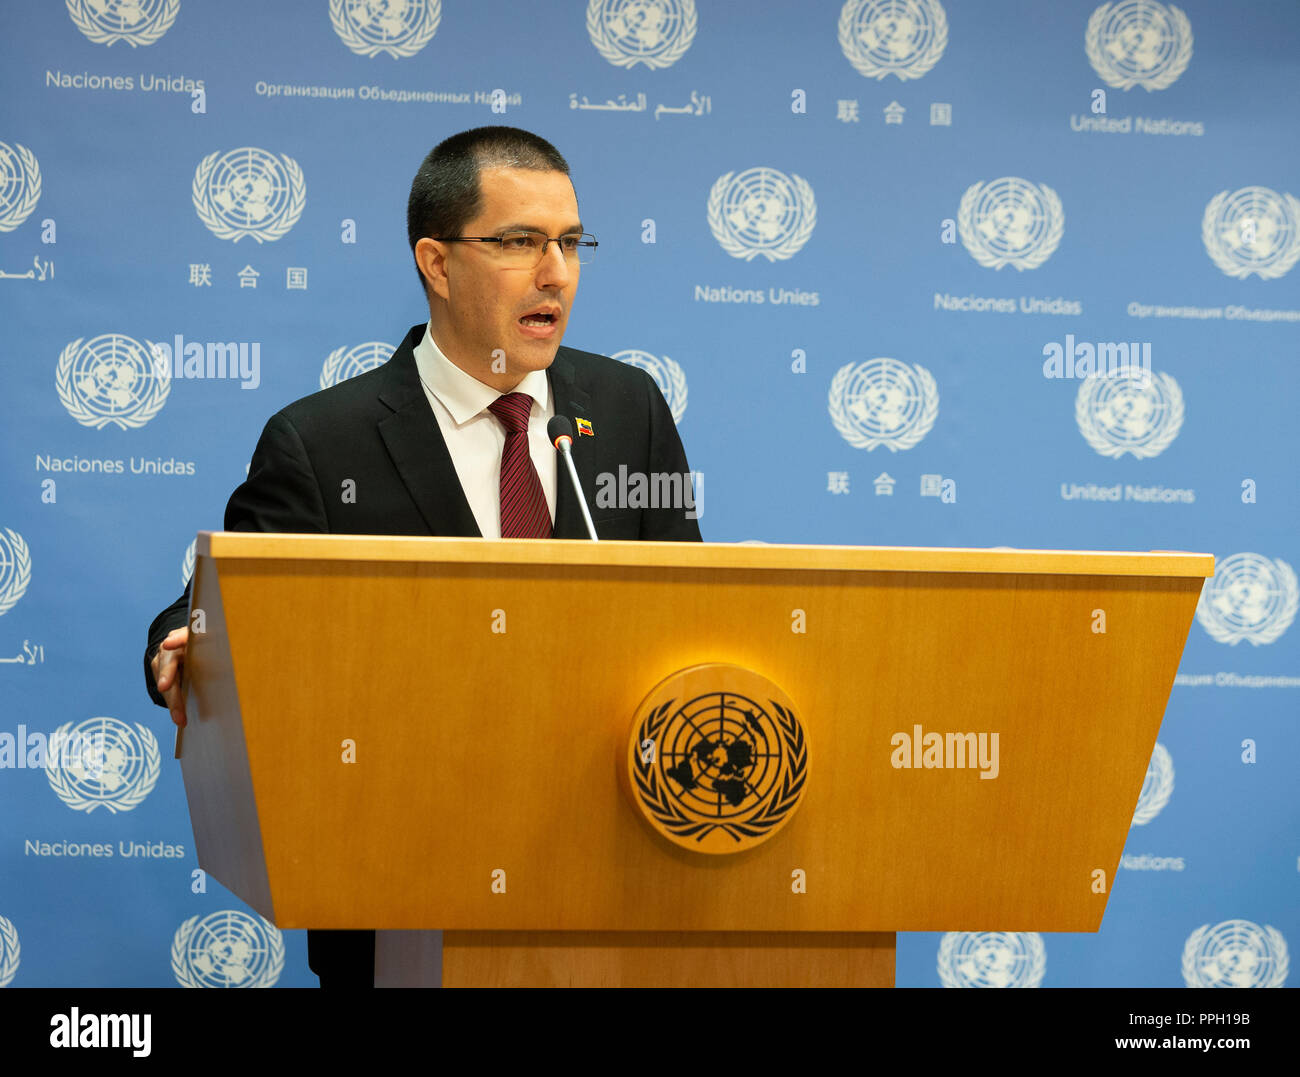 New York, NY - September 25, 2018: Press briefing by Jorge Arreaza Minister for Foreign Affairs of the Bolivarian Republic of Venezuela at United Nations Headquarters Credit: lev radin/Alamy Live News - Stock Image